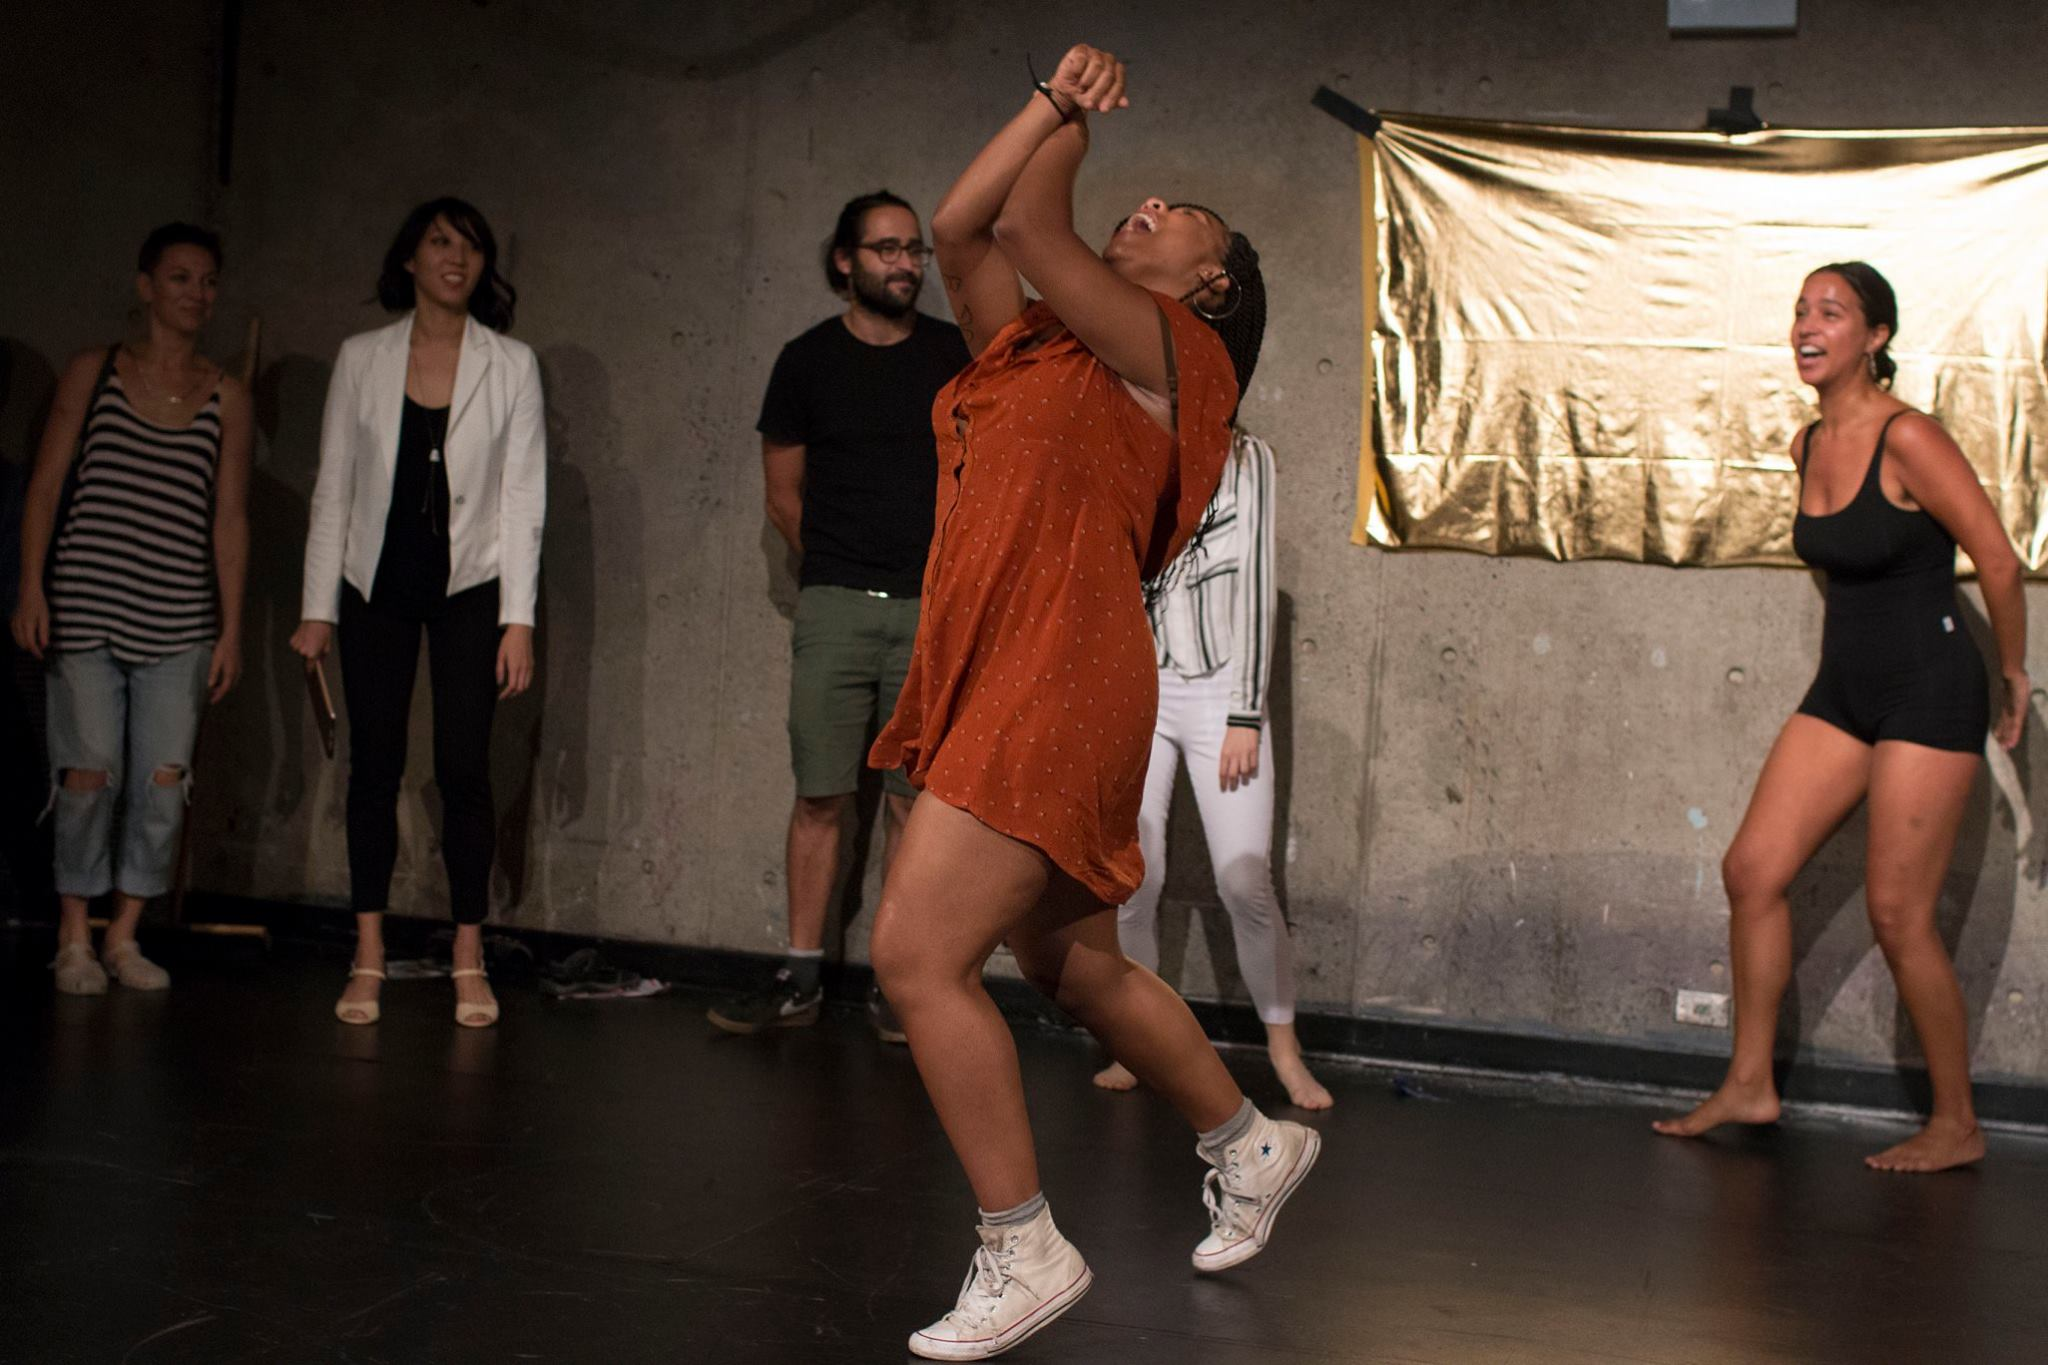 """In Part II the audience was invited to take part in the The (Im)Migrant Hustle dance line, inspired by Soul Train. Each person was invited to contribute a dance move that represented their family's relationship with migration, whether by choice/ force/ necessity or indigeniety, and finding """"respectability"""" in the USA."""